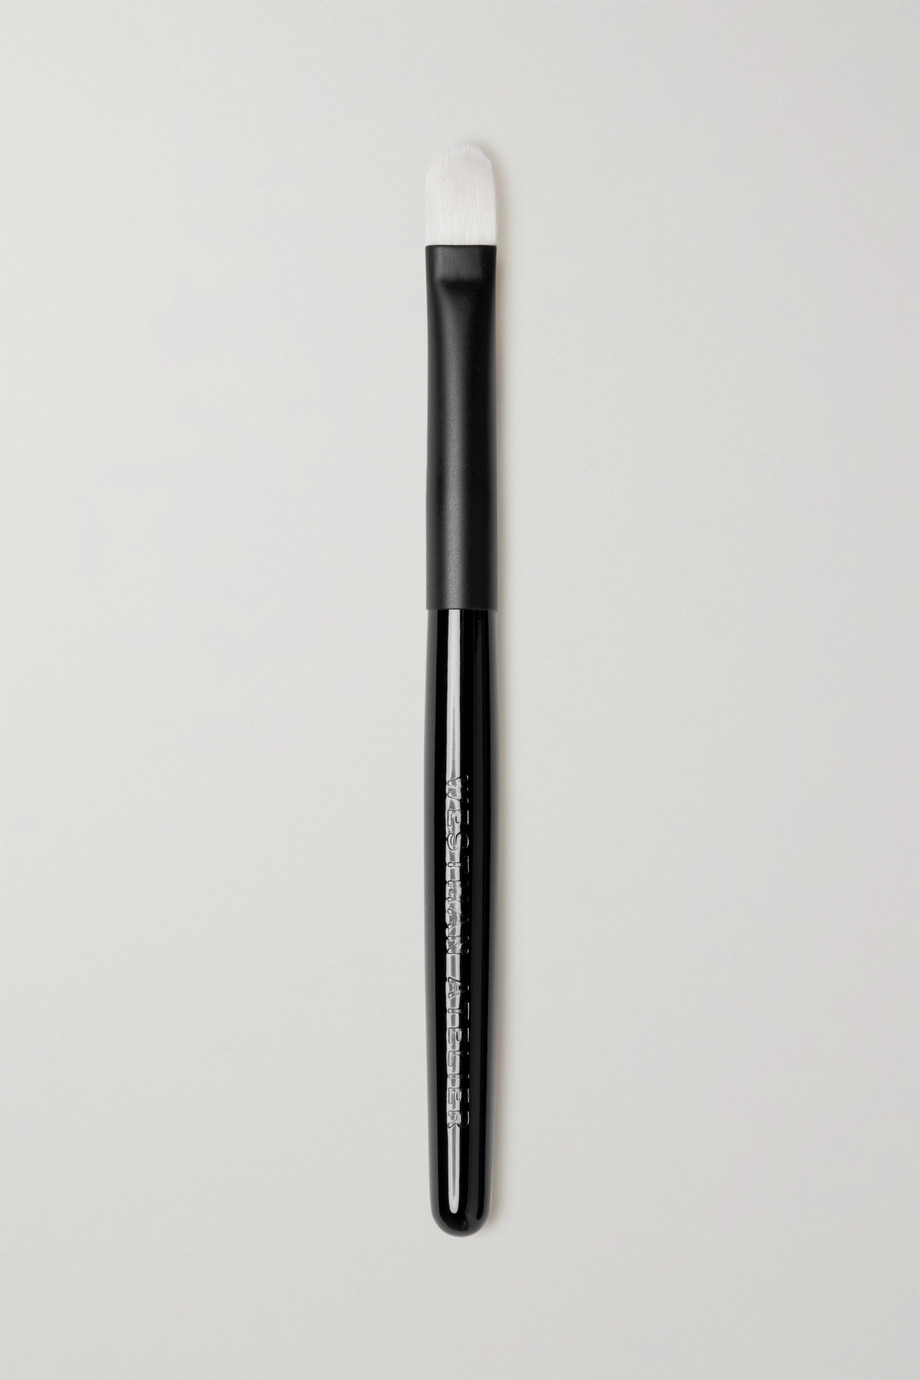 WESTMAN ATELIER Lip Brush